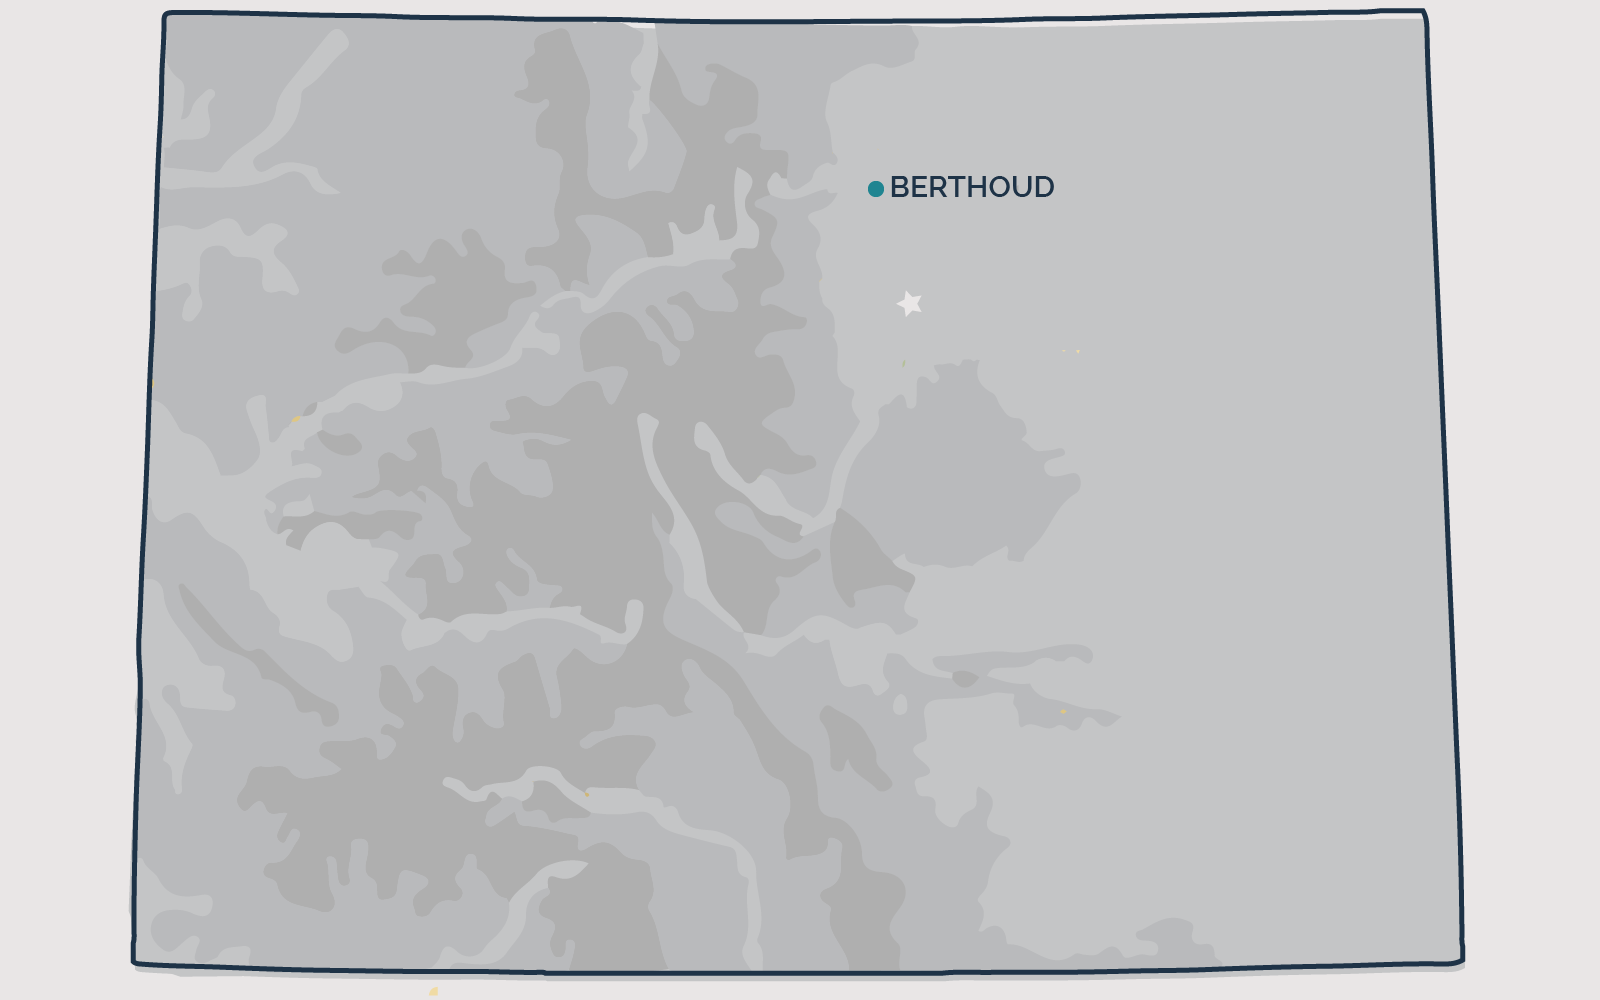 Berthoud, Colorado - Your health and satisfaction are important to us. We are located in Littleton, Colorado and are pleased to provide our professional, honest, and affordable radon testing and mitigation services to happy and satisfied customers all along the front range of our beautiful State of Colorado.